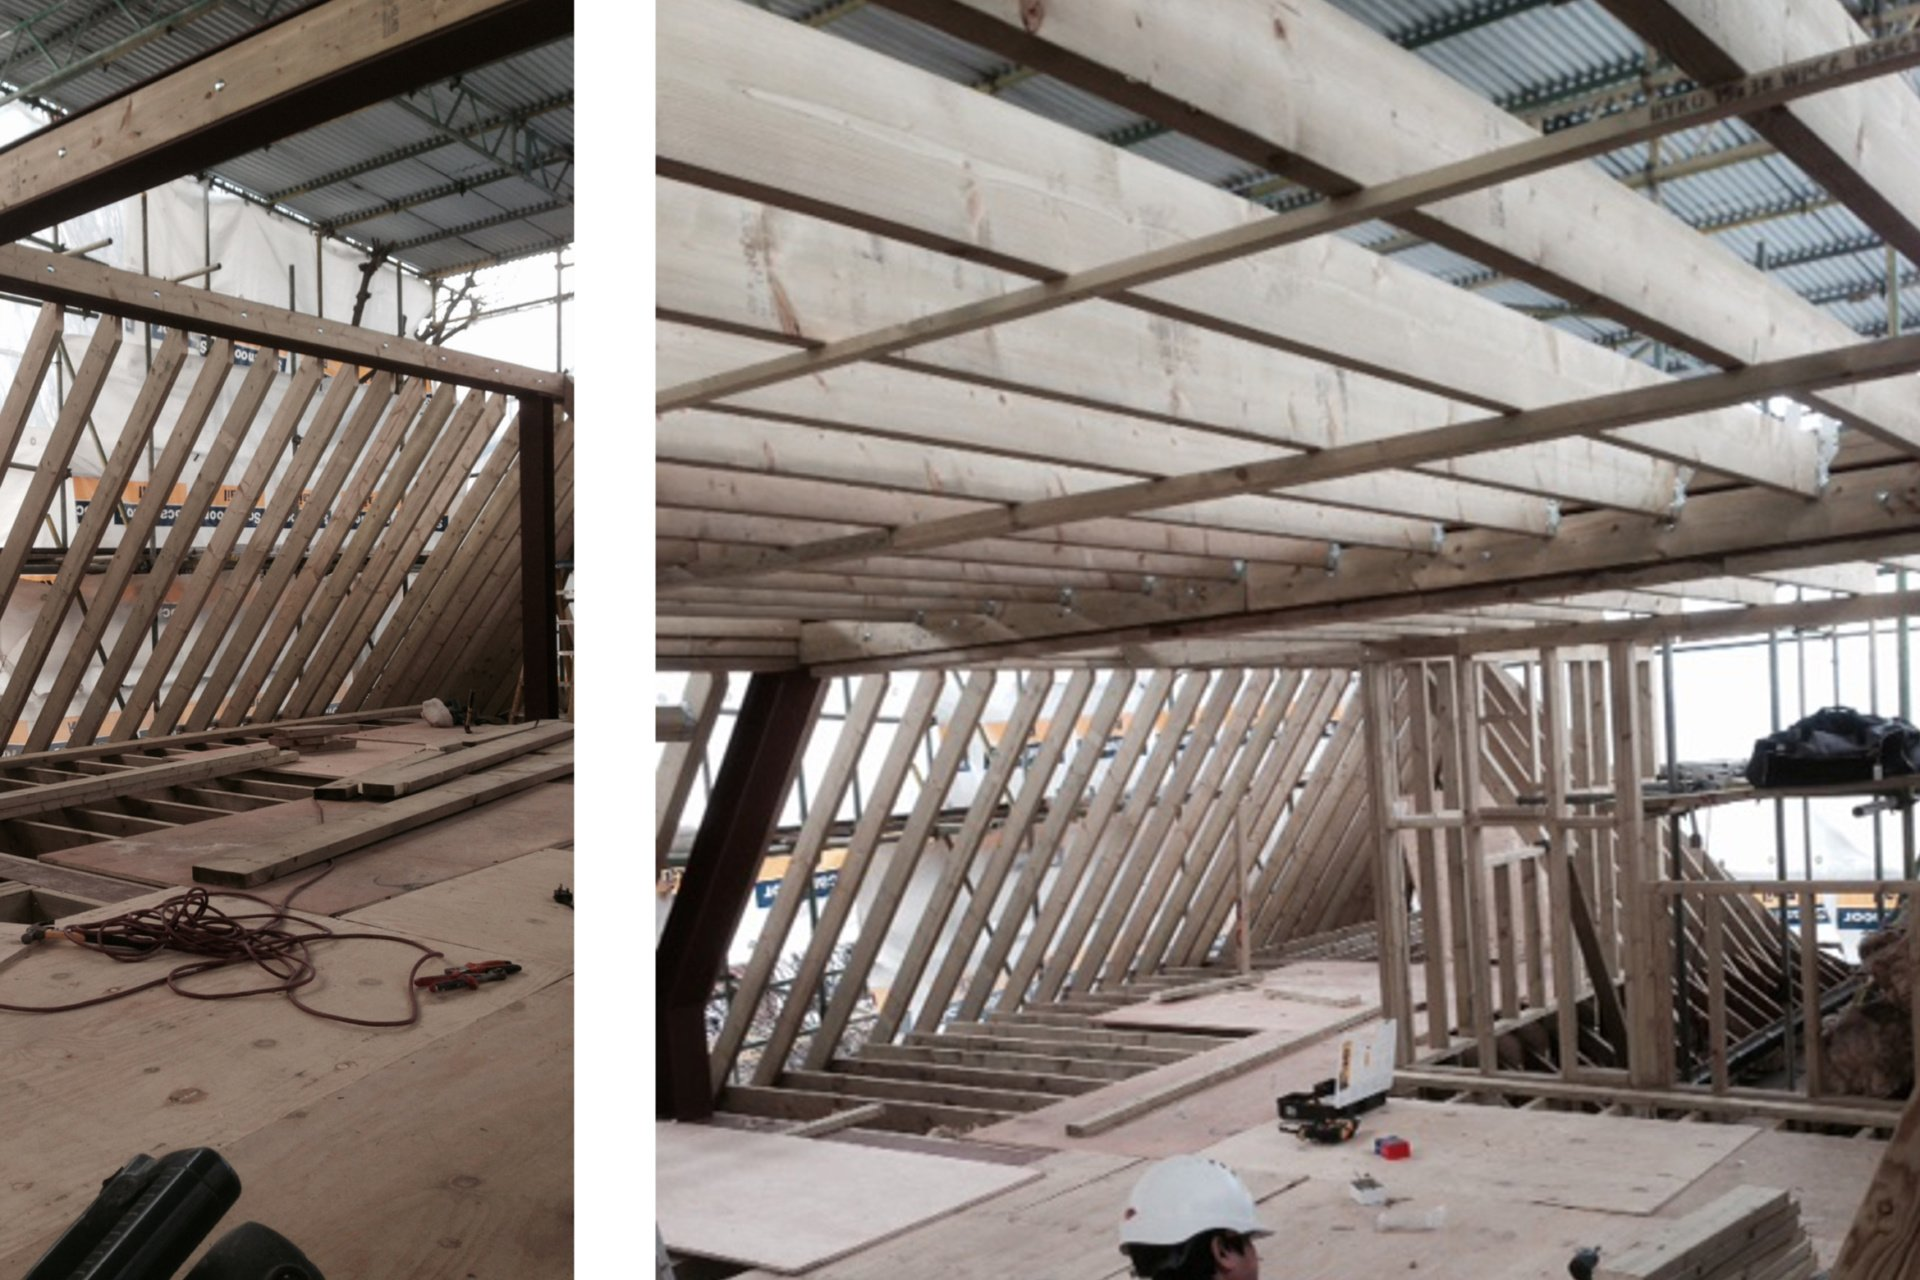 Architect designed roof flat extension Chiswick Hounslow W4 Timber frame construction Chiswick, Hounslow W4 | Roof extension to a flat